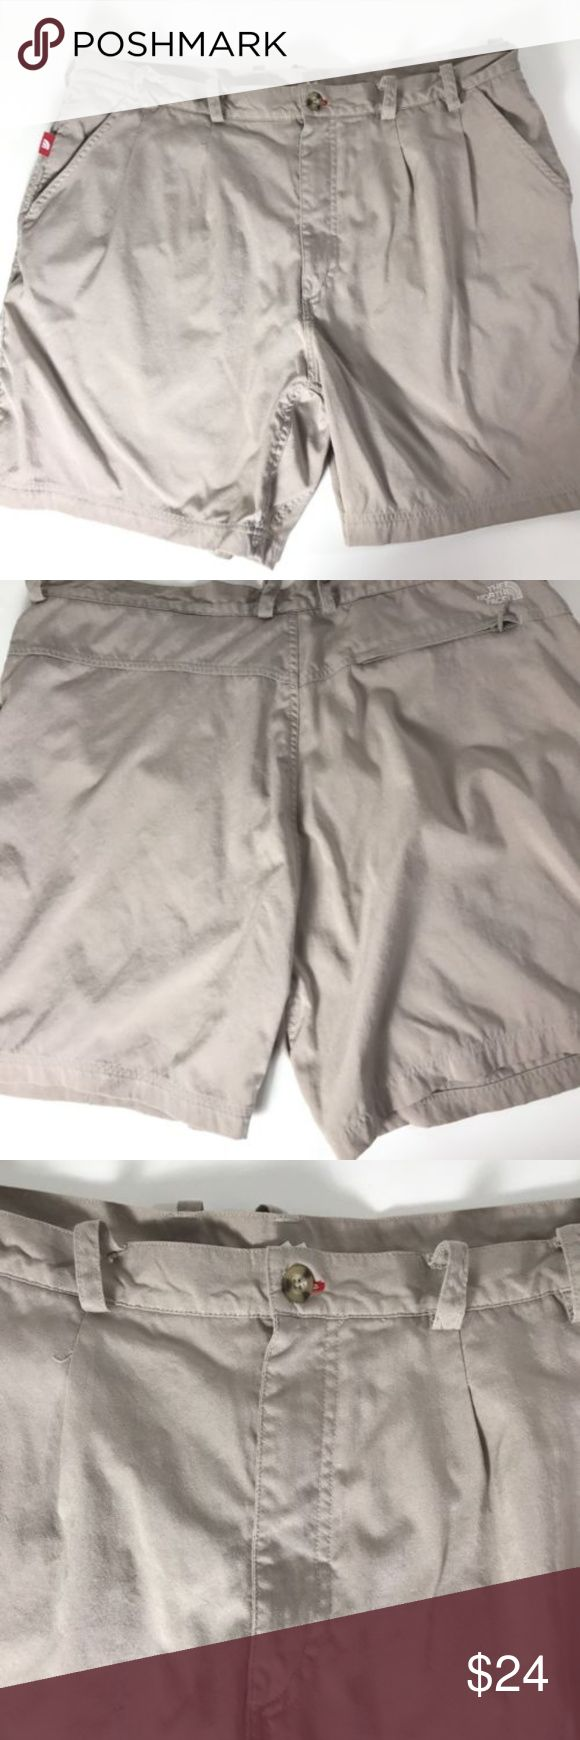 The North Face Mens Khaki Shorts Size 40 hiking The North Face Mens Khaki Shorts Size 40 Outdoor Hiking Camping  Condition  Nice shape no rips and no stains  Measurements  Waist 40 inches  Length 19 inches outseam The North Face Shorts Athletic